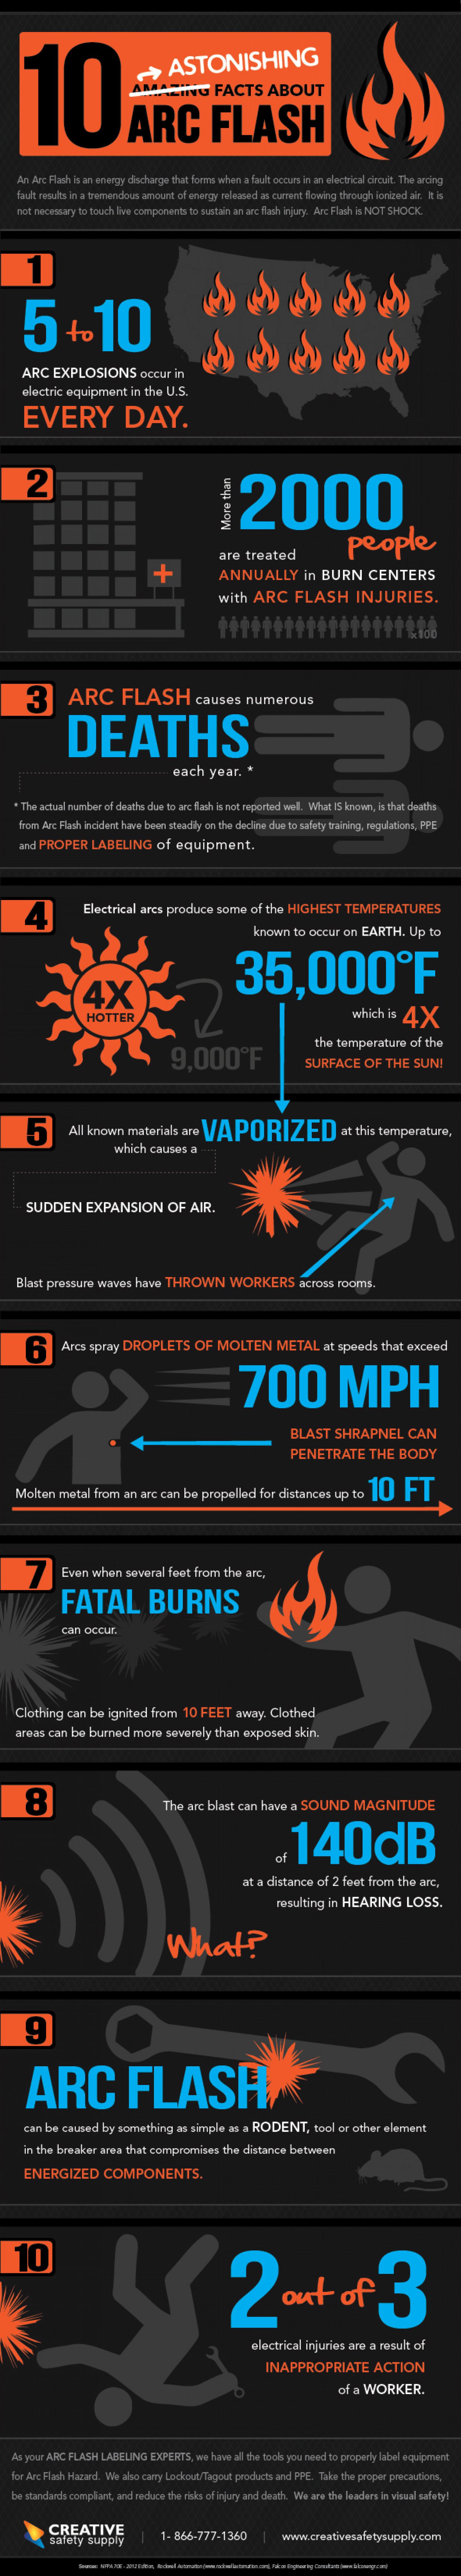 10 Amazinf facts about Arc Flash